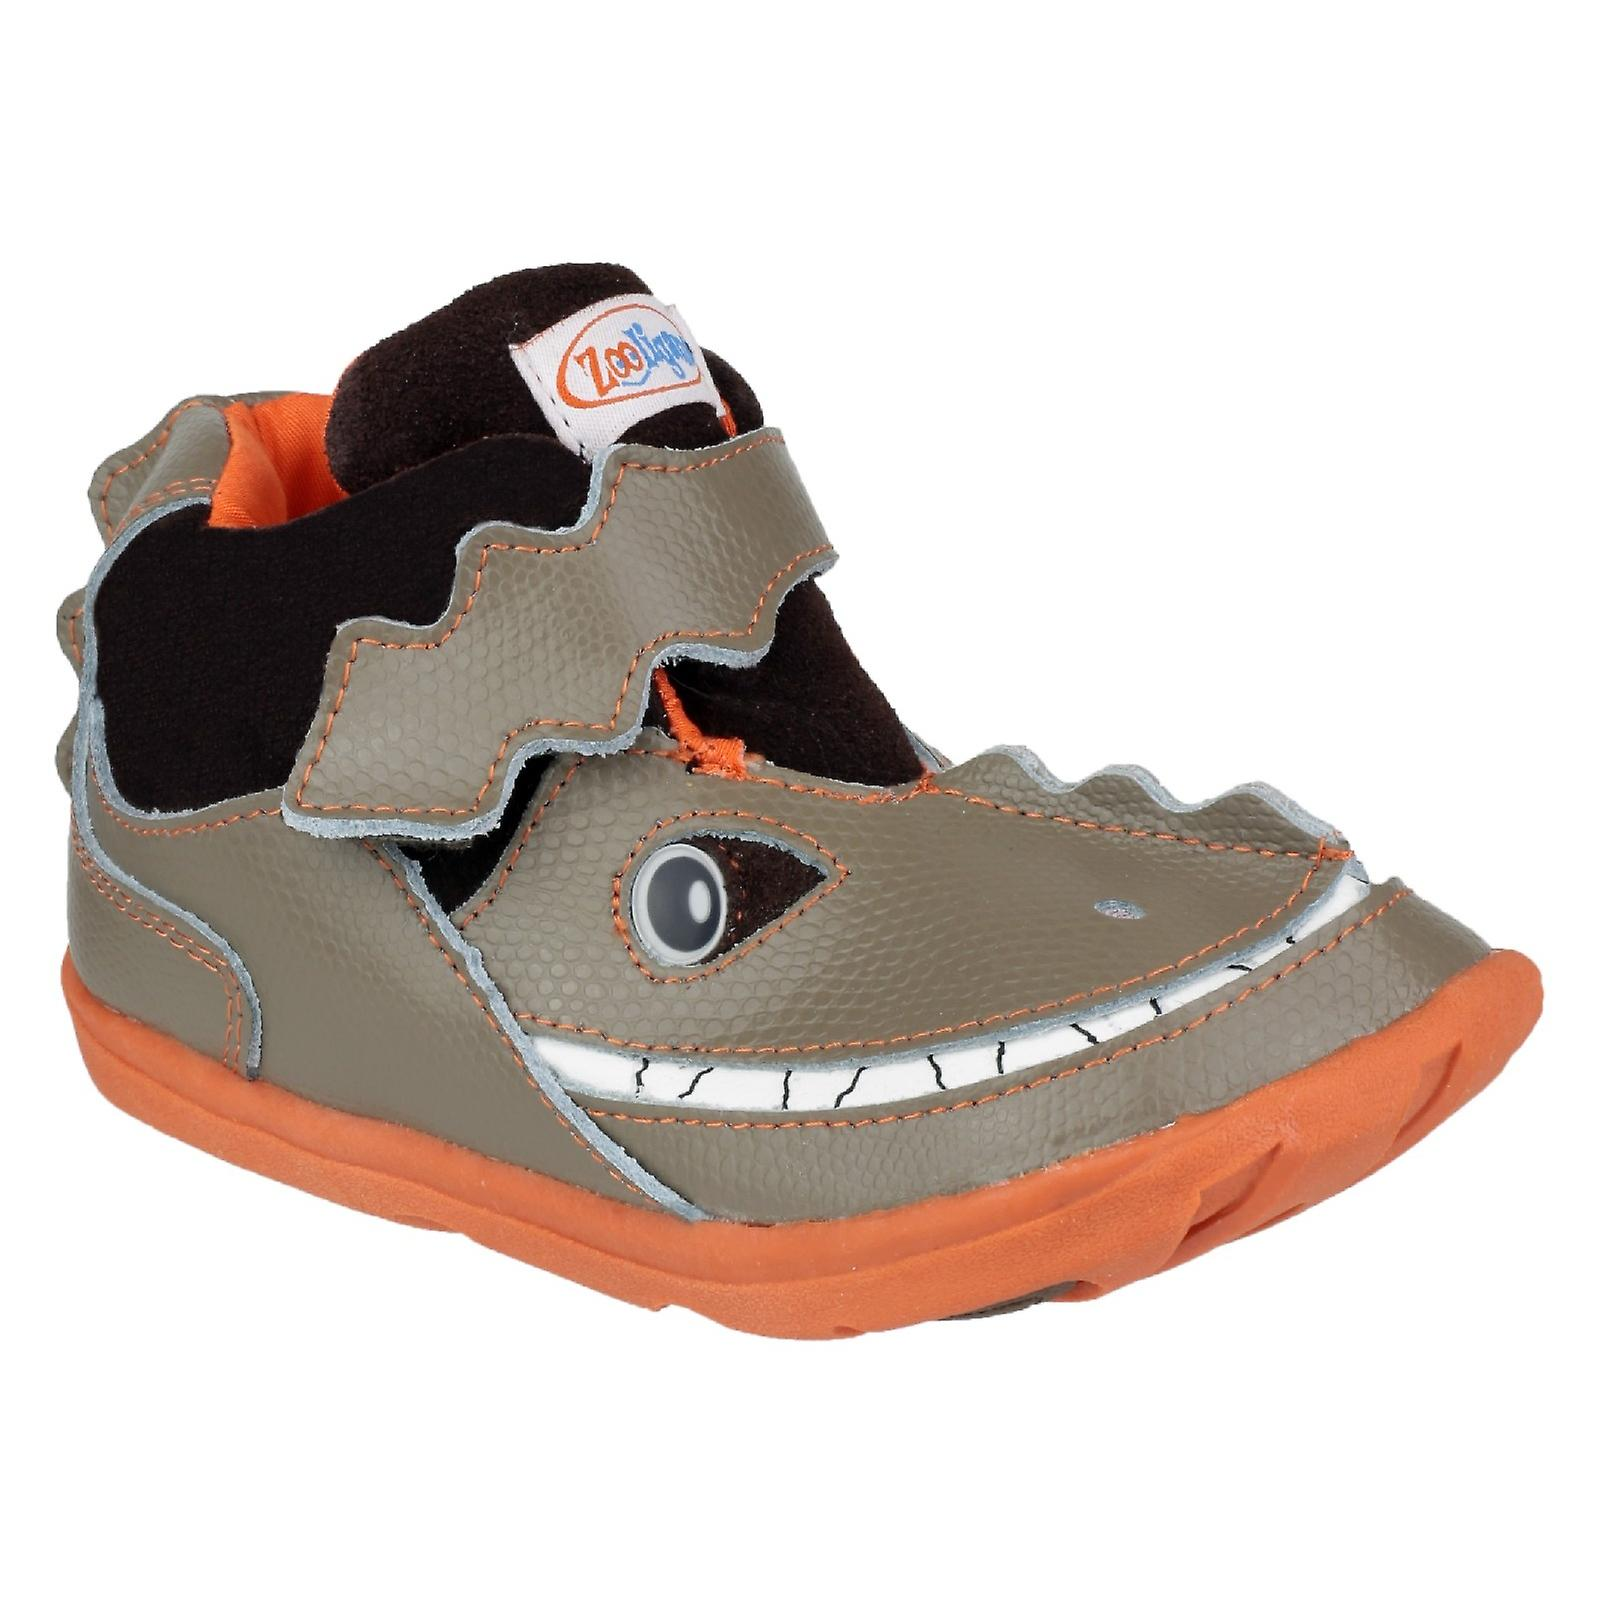 Zooligans Zoo Deano The Dinosaur Boys chaussures